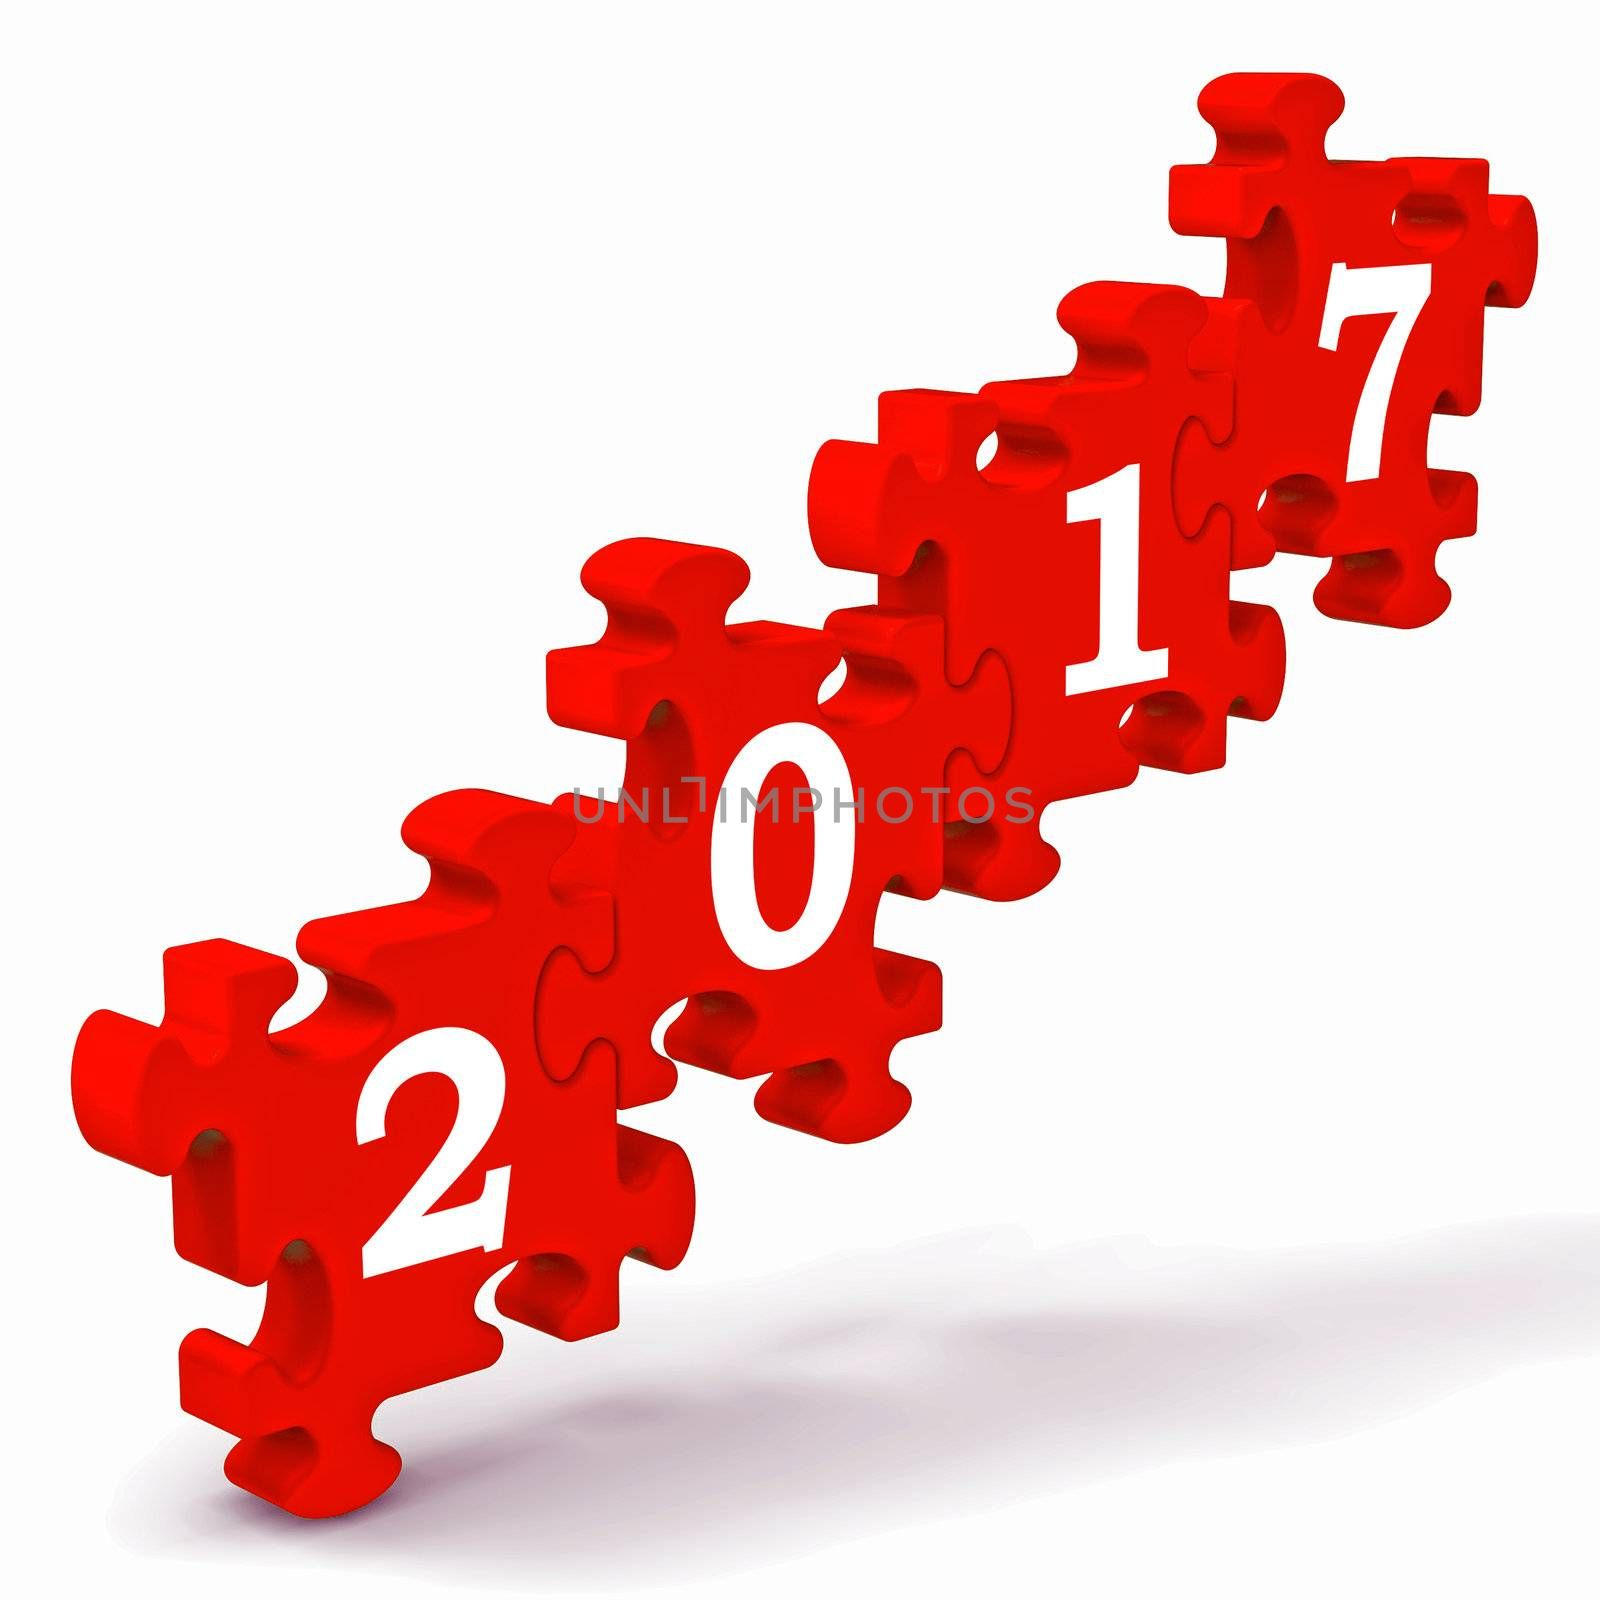 2017 Puzzle Shows New Year's Greetings And Festivity